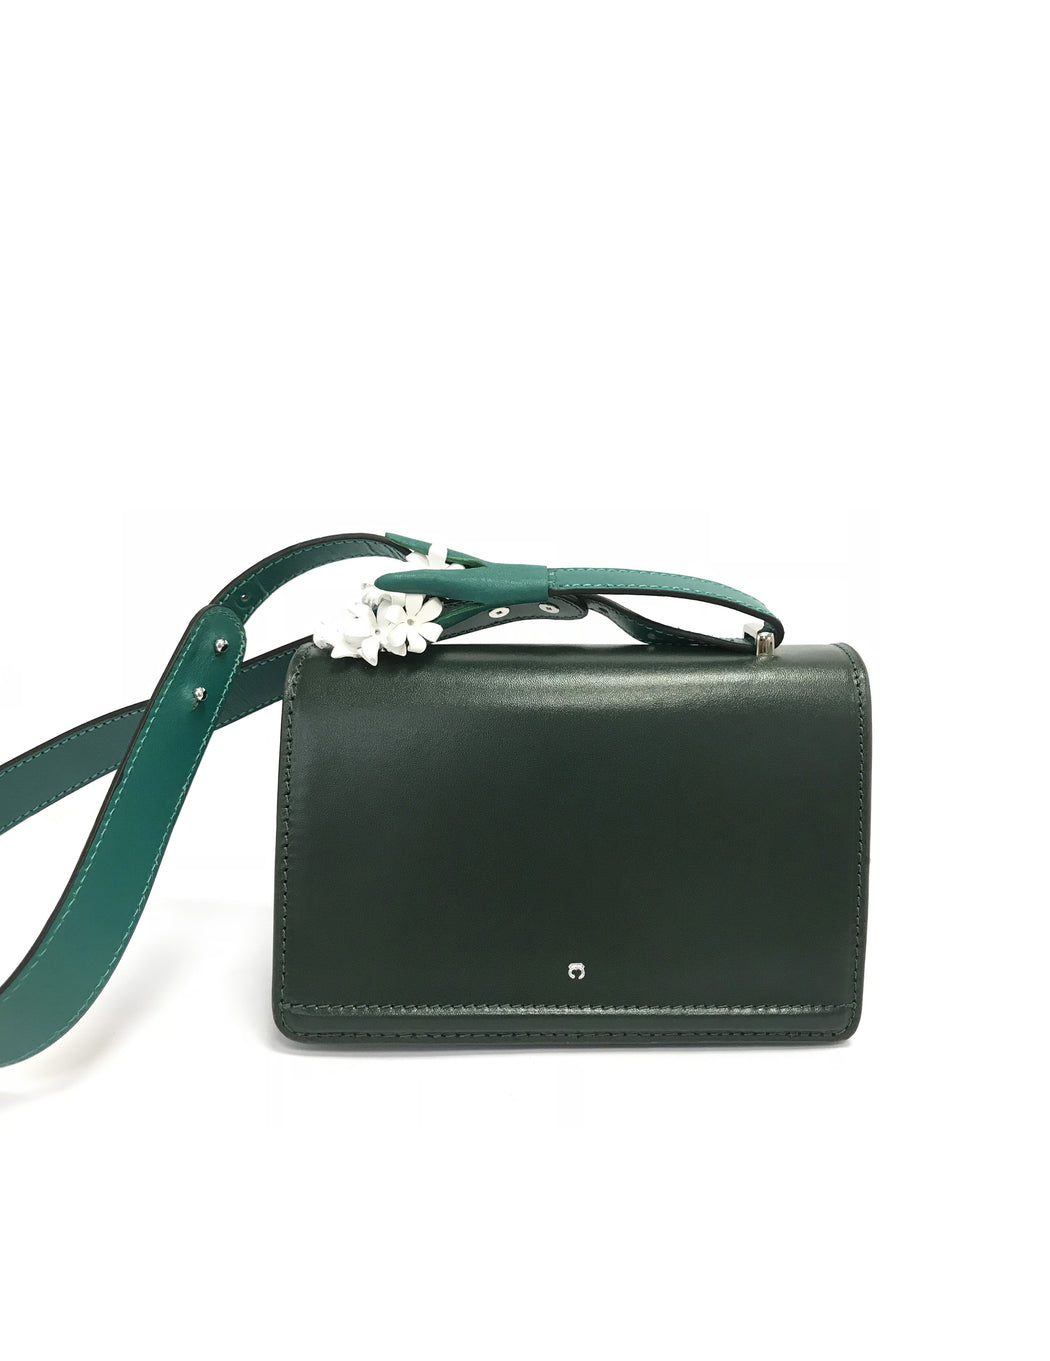 DARK GREEN HYACINTH clutch